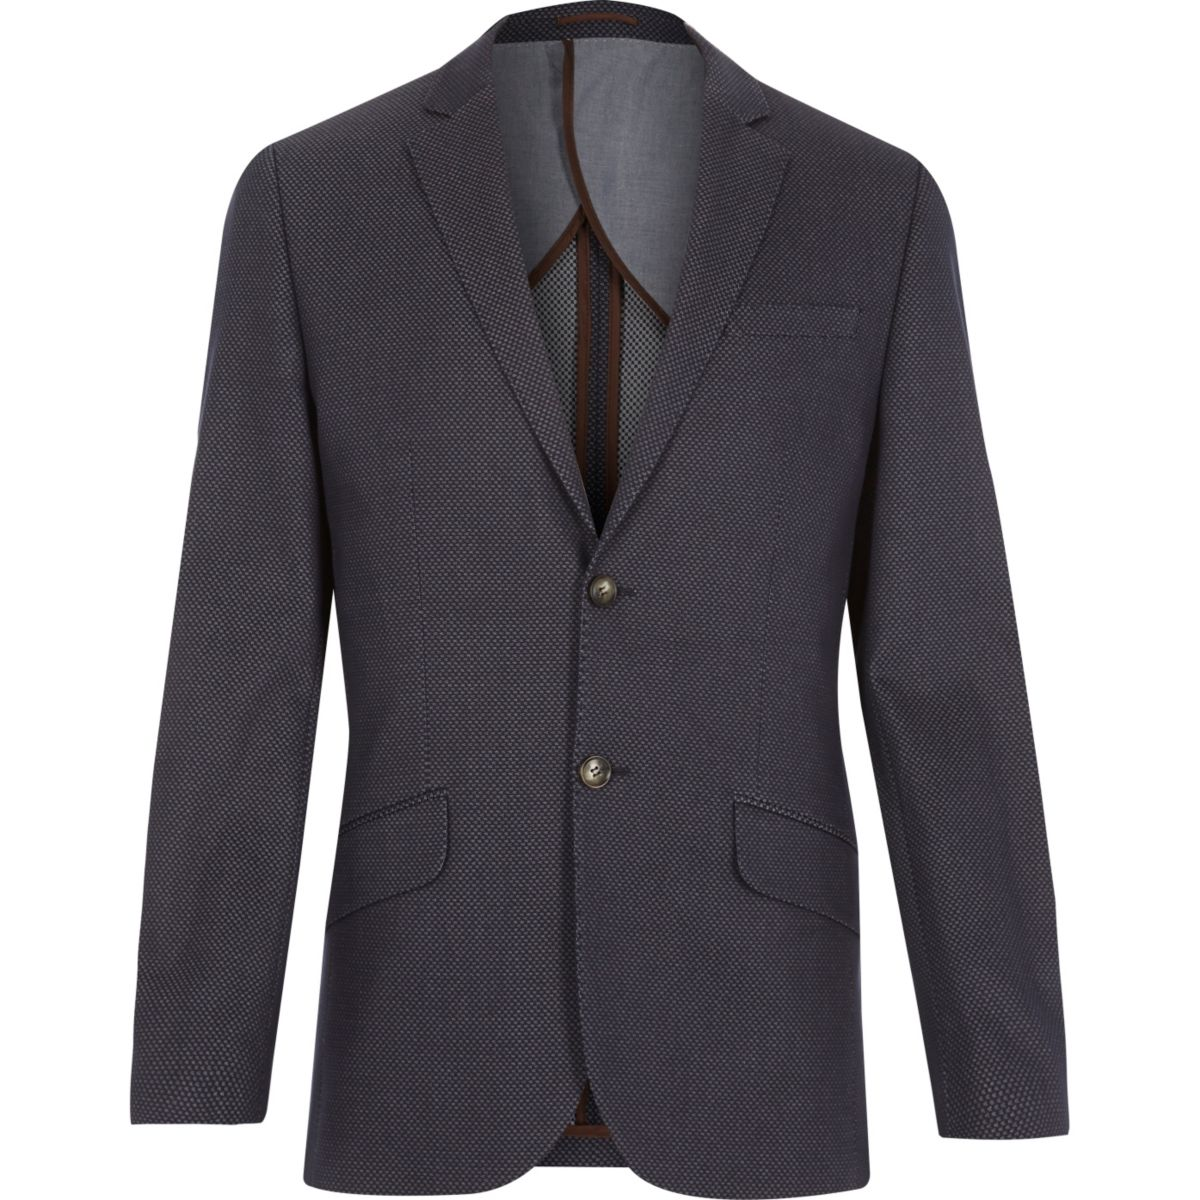 Blue jacquard weave slim suit jacket